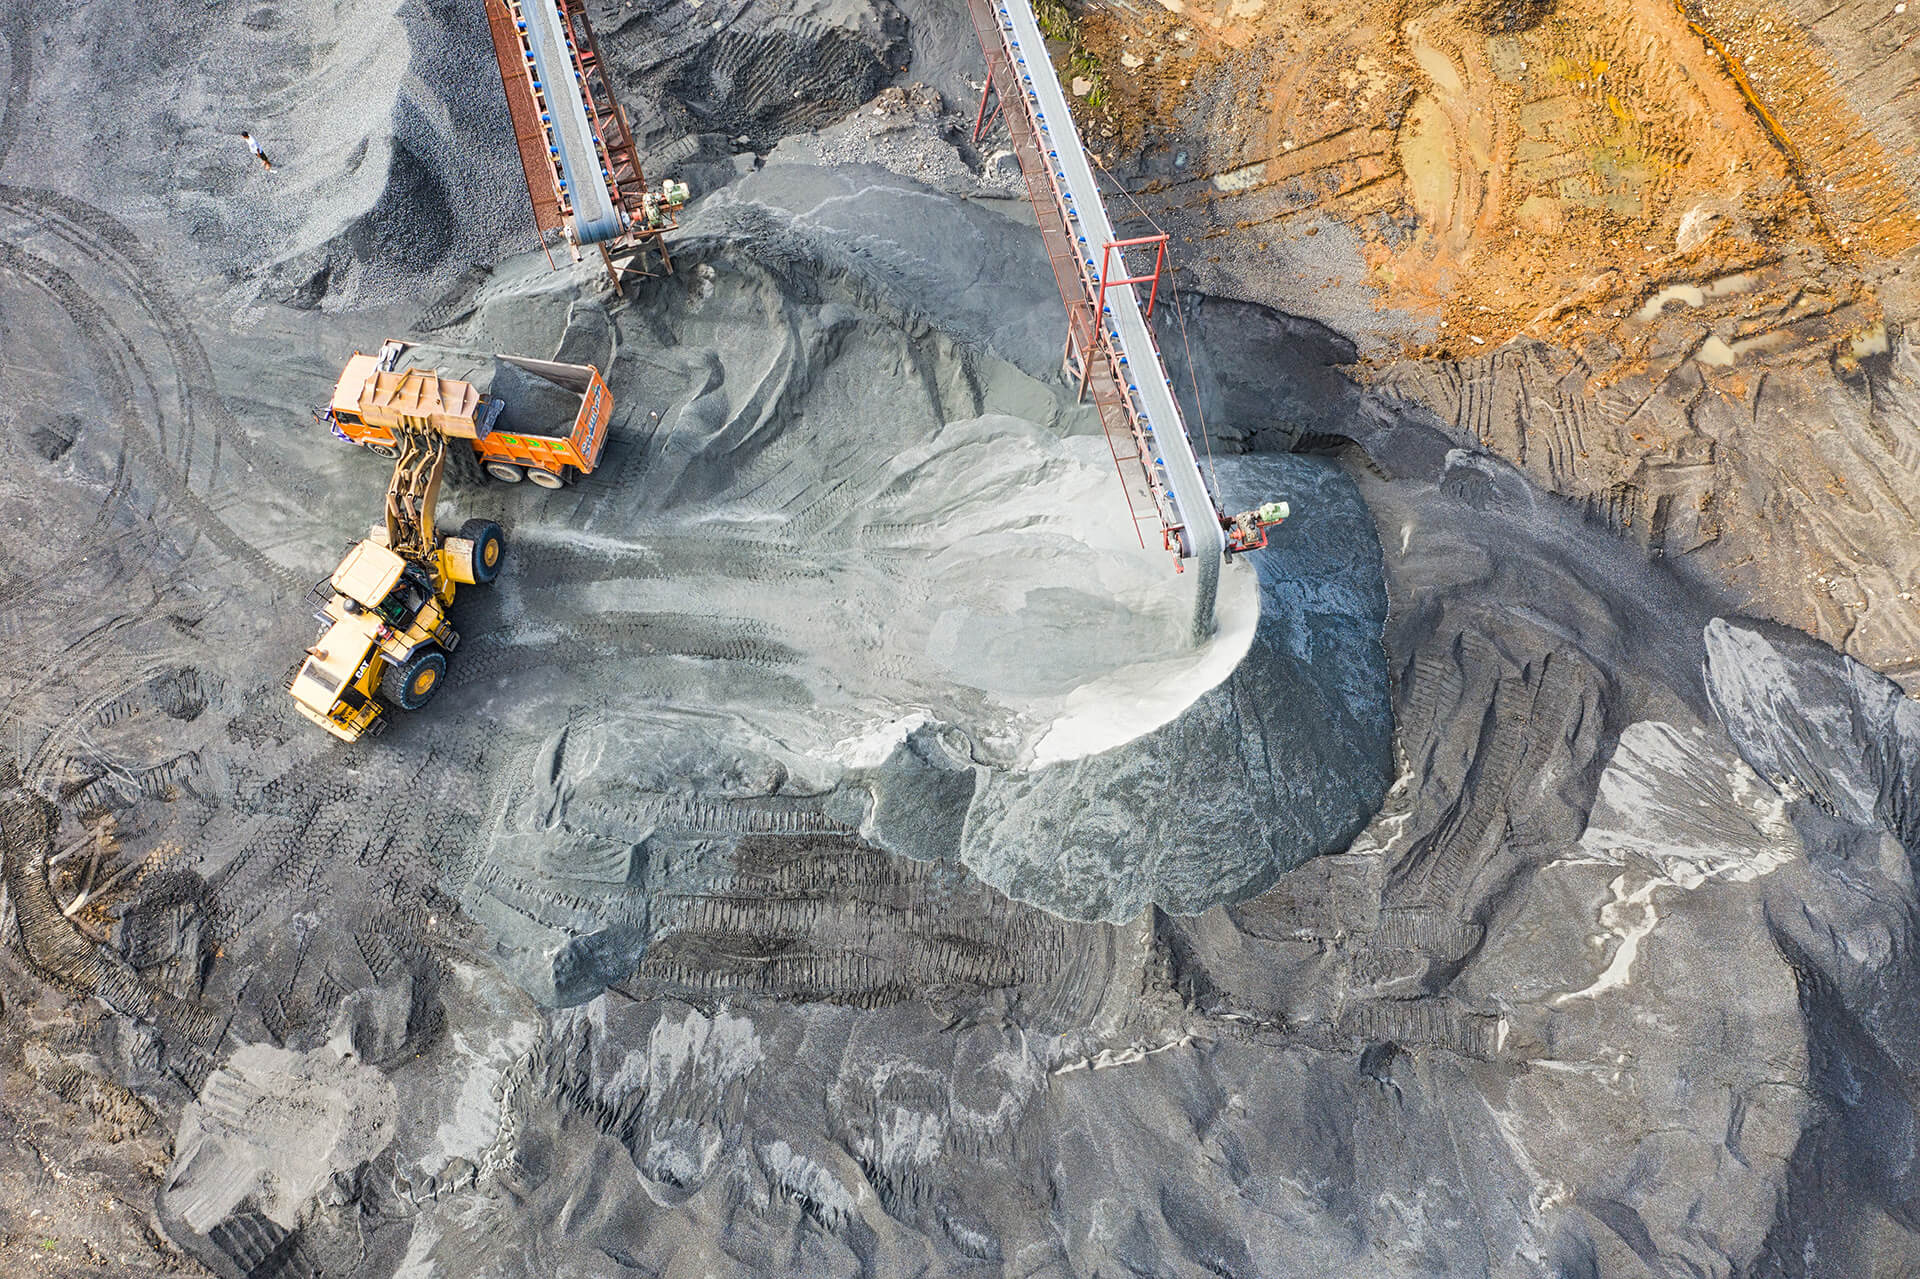 Hearing Loss in the Mining Industry - Why are Mine Workers at Higher Risk for Hearing Loss